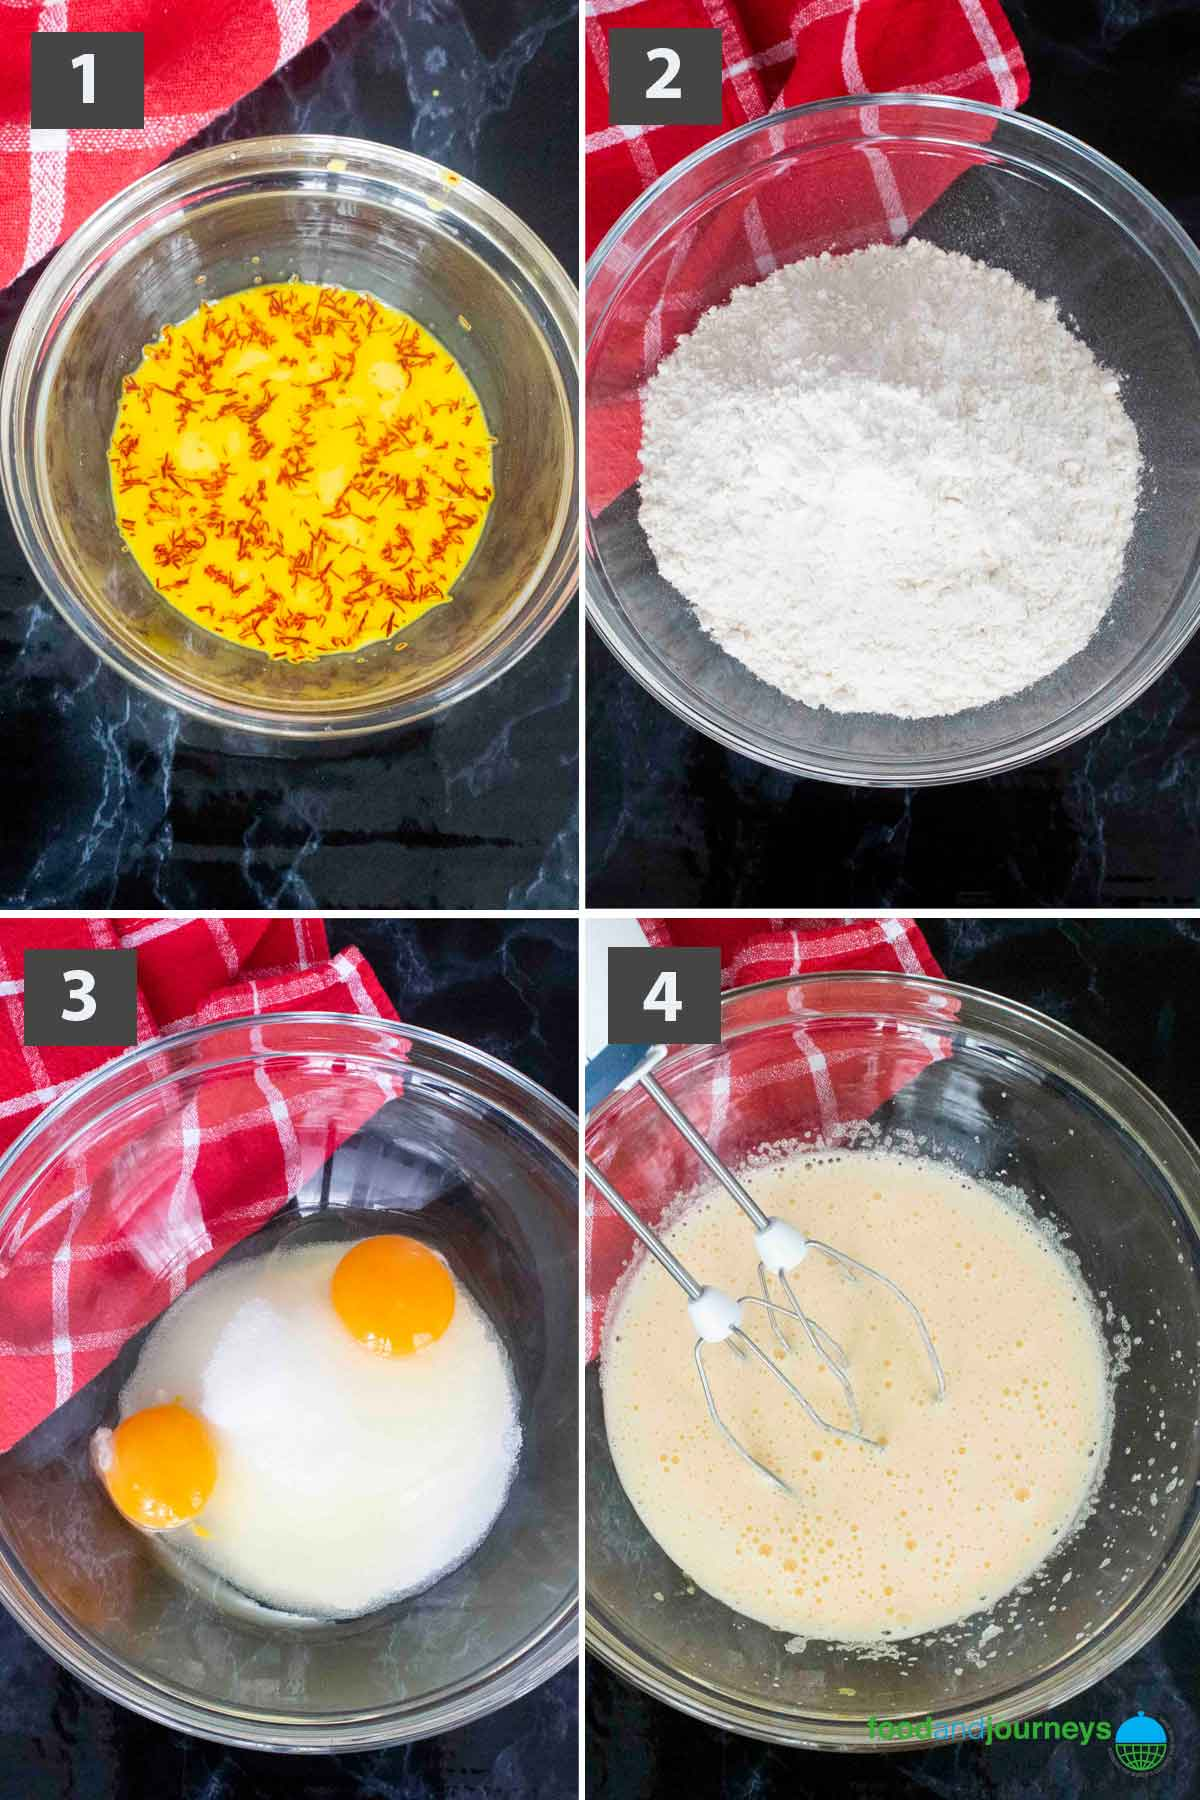 First part of a collage of images showing the step by step process on how to make saffron cake at home.